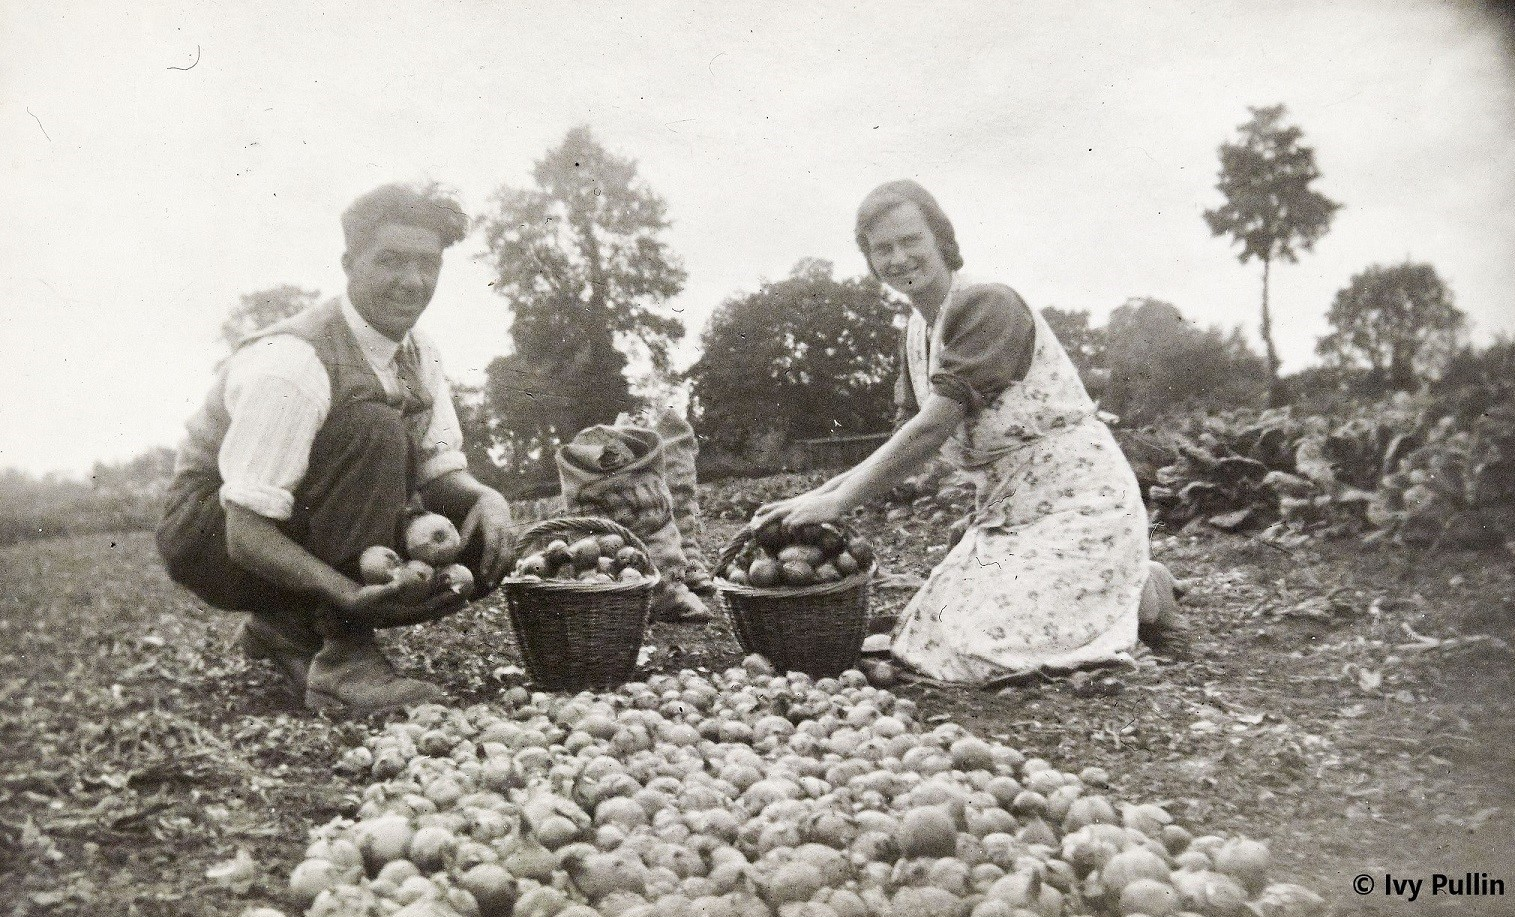 Couple packing onions into baskets